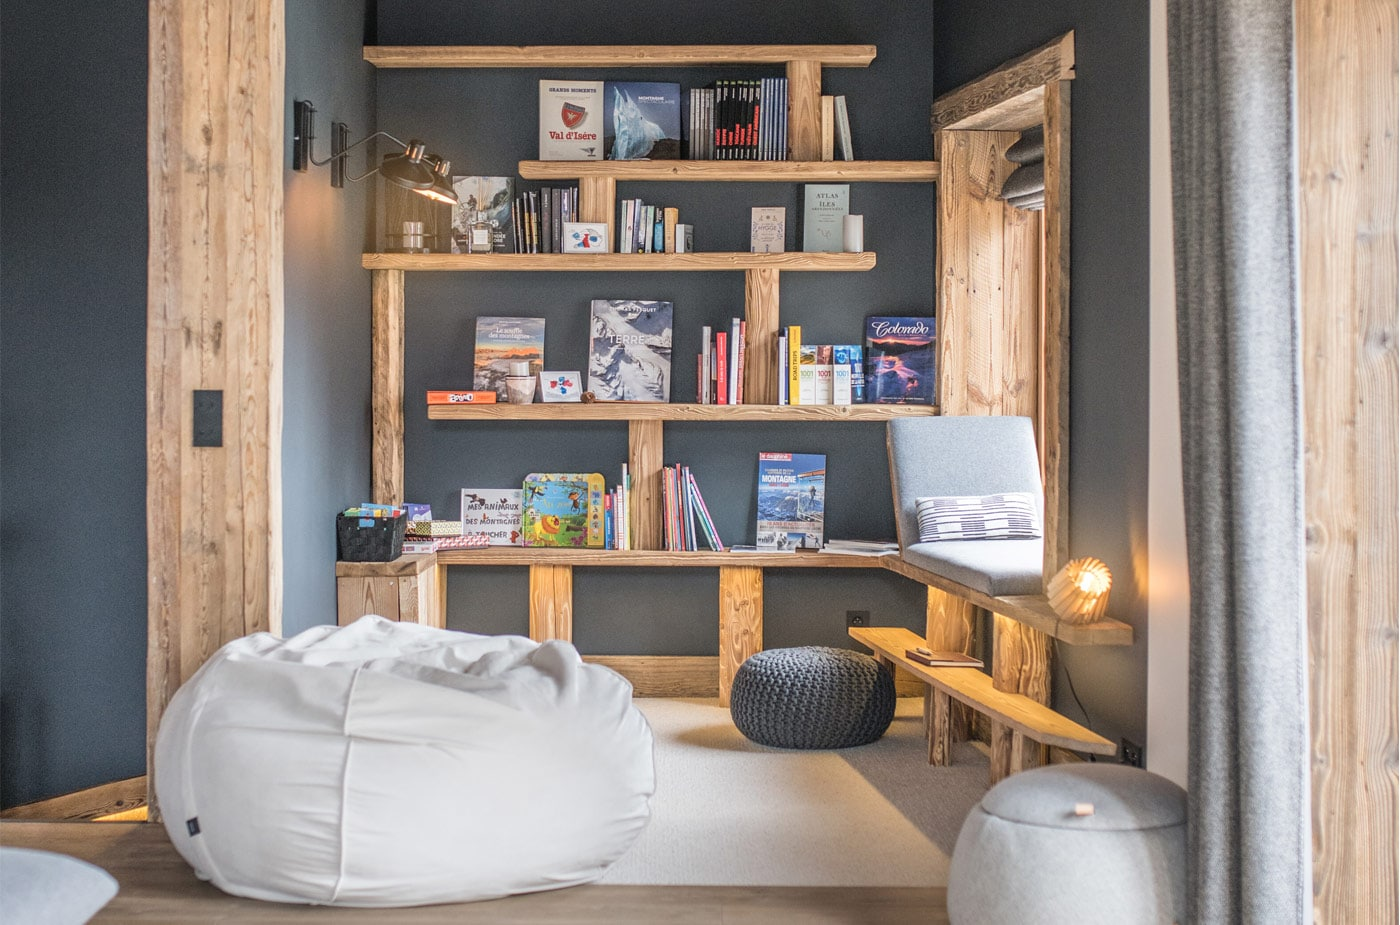 chalet-ovalala-val-disere-living-room-library-read-3